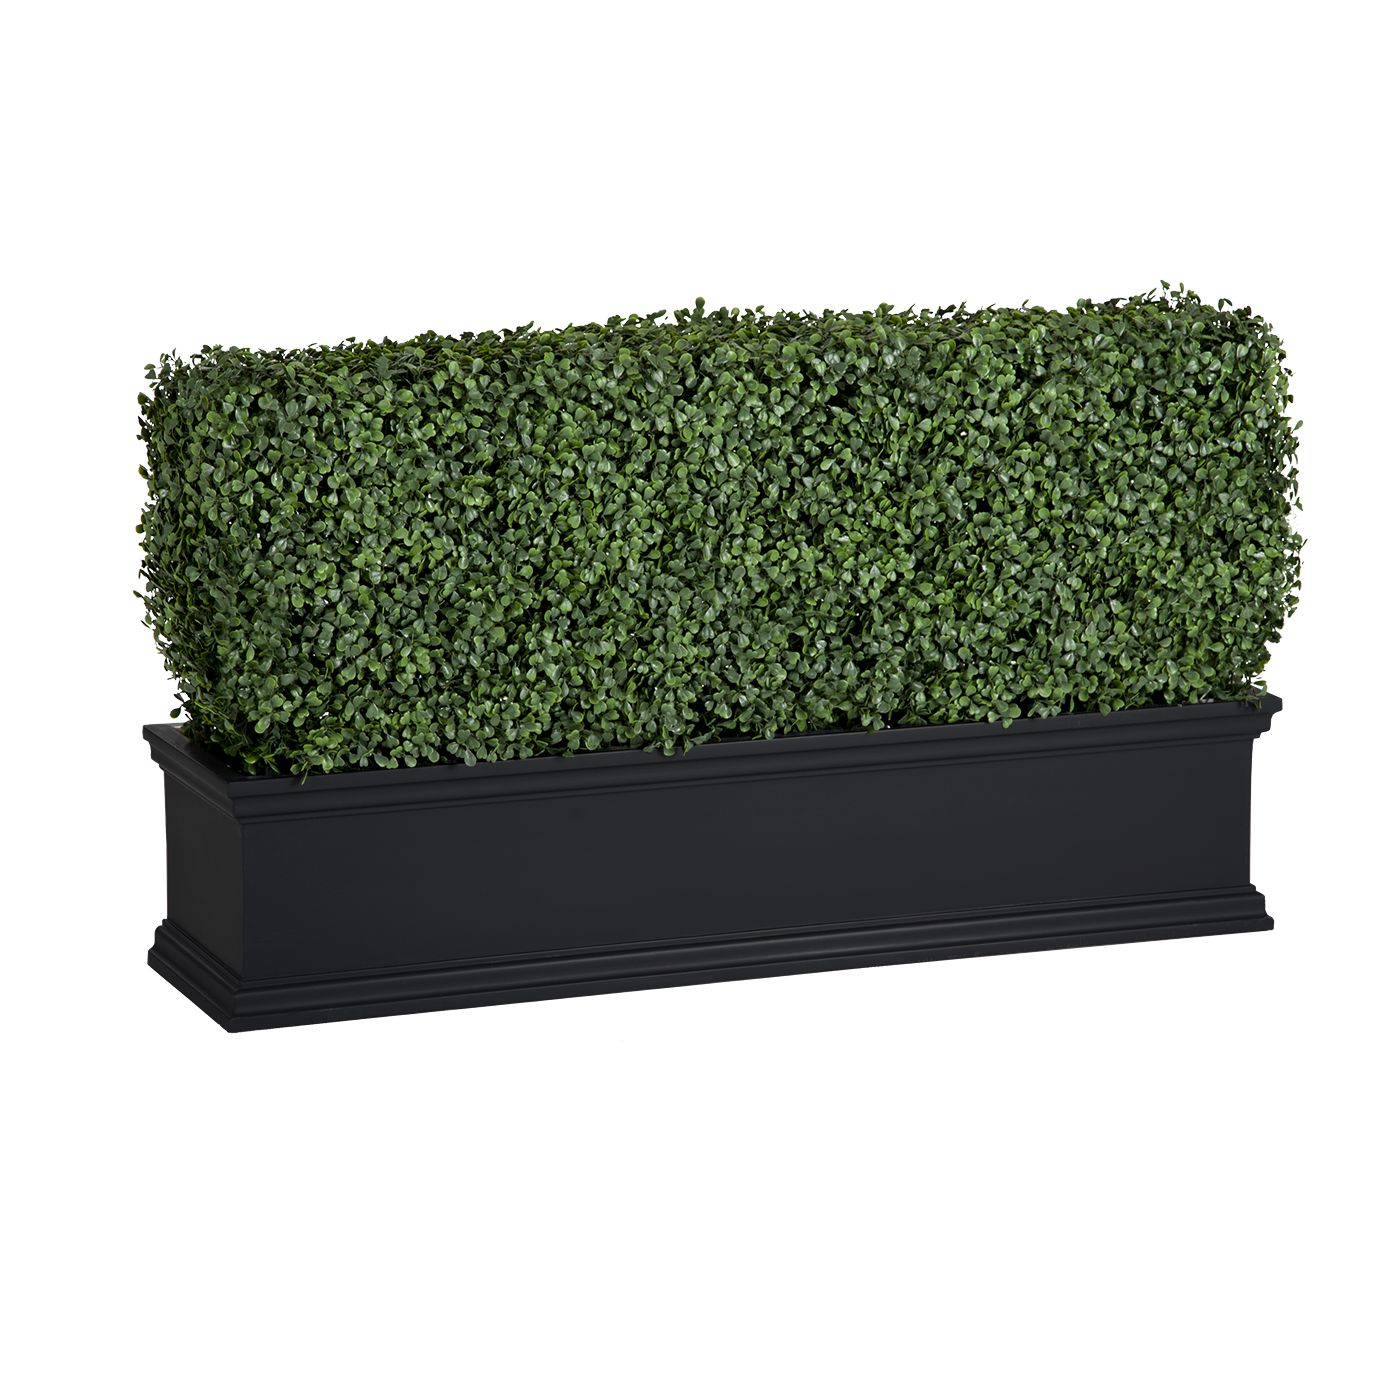 Outdoor Artificial Hedges in Window Boxes Boxwood & Ivy Hooks